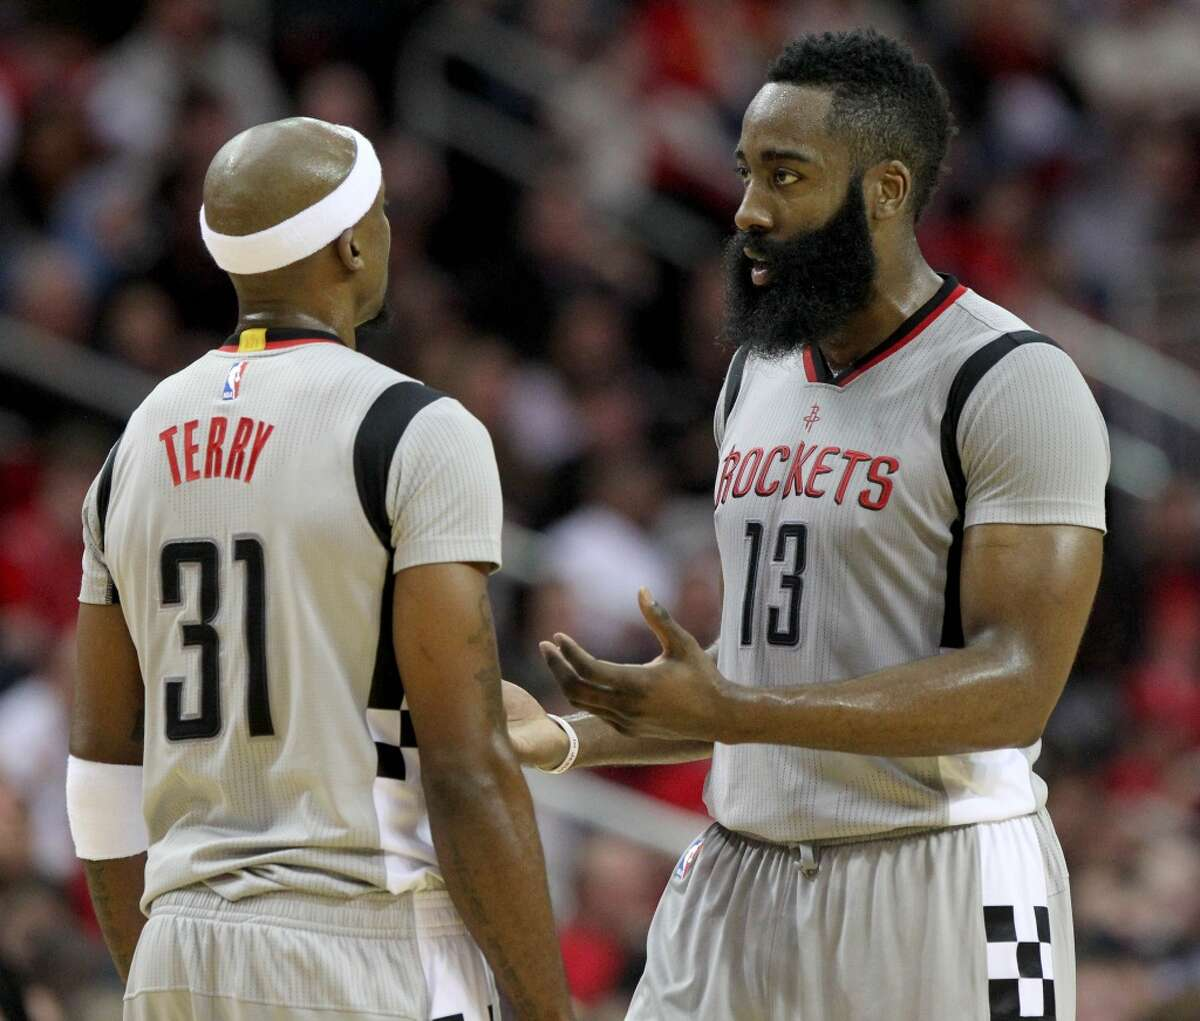 Houston Rockets guard James Harden (13) and Houston Rockets guard Jason Terry (31) during the third quarter at the Toyota Center Friday, Jan. 15, 2016, in Houston. Rockets lost 77-91. ( Gary Coronado / Houston Chronicle )